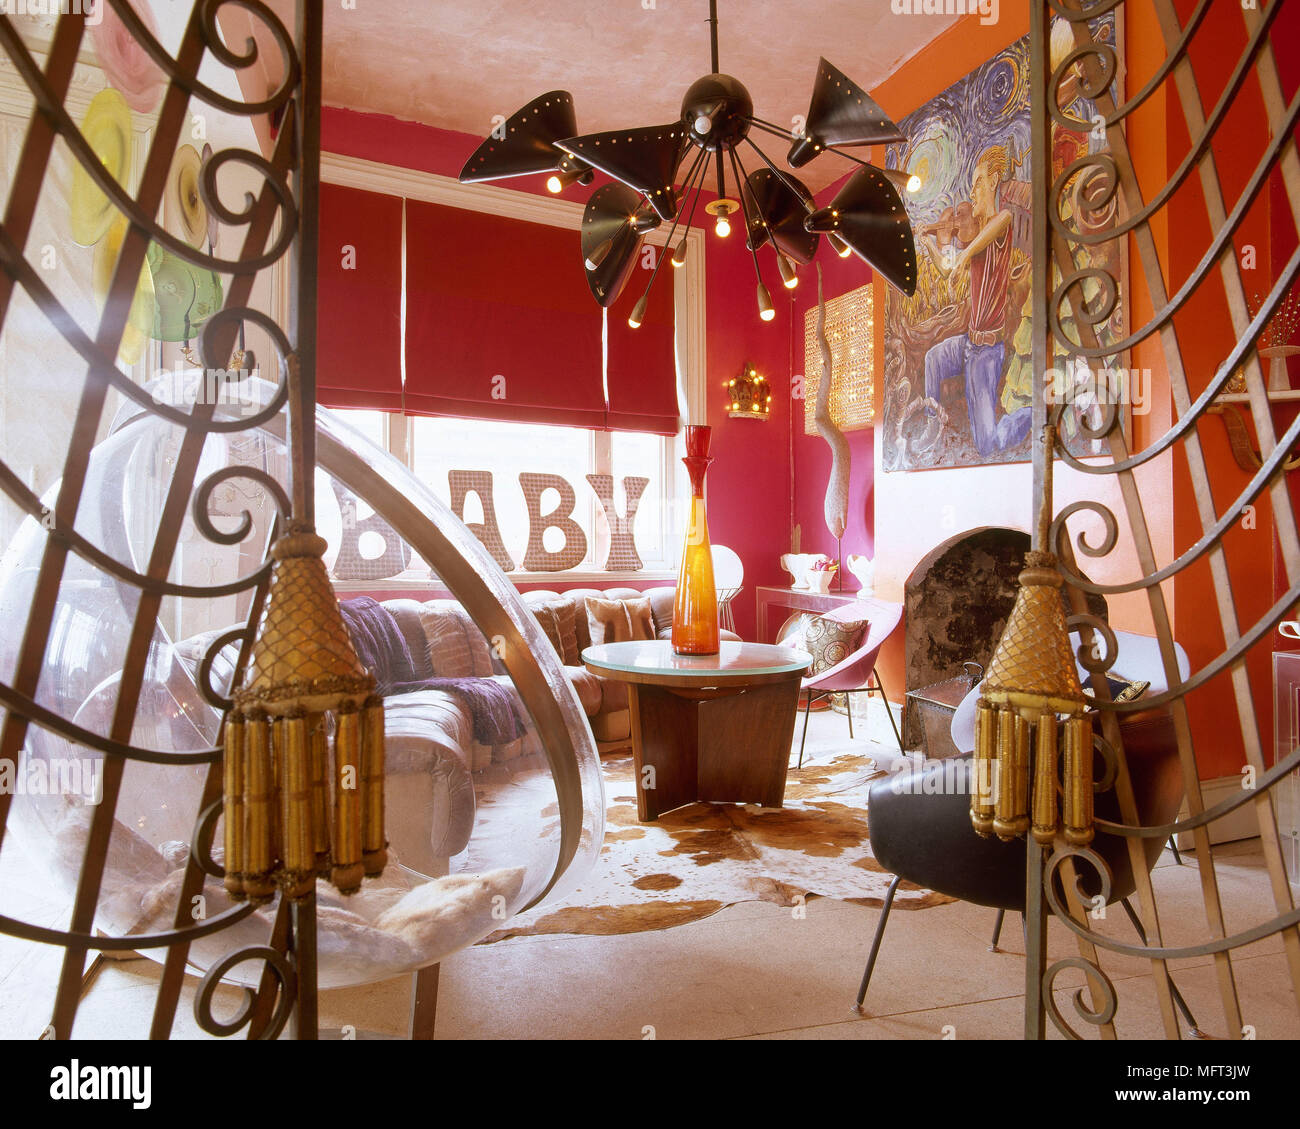 Incroyable Eclectic Red Sitting Room Retro Furniture Roller Blind Abstract Light  Fitting Interiors Rooms Living Spaces Unusual Arty Hippy Colourful Hot  Colours